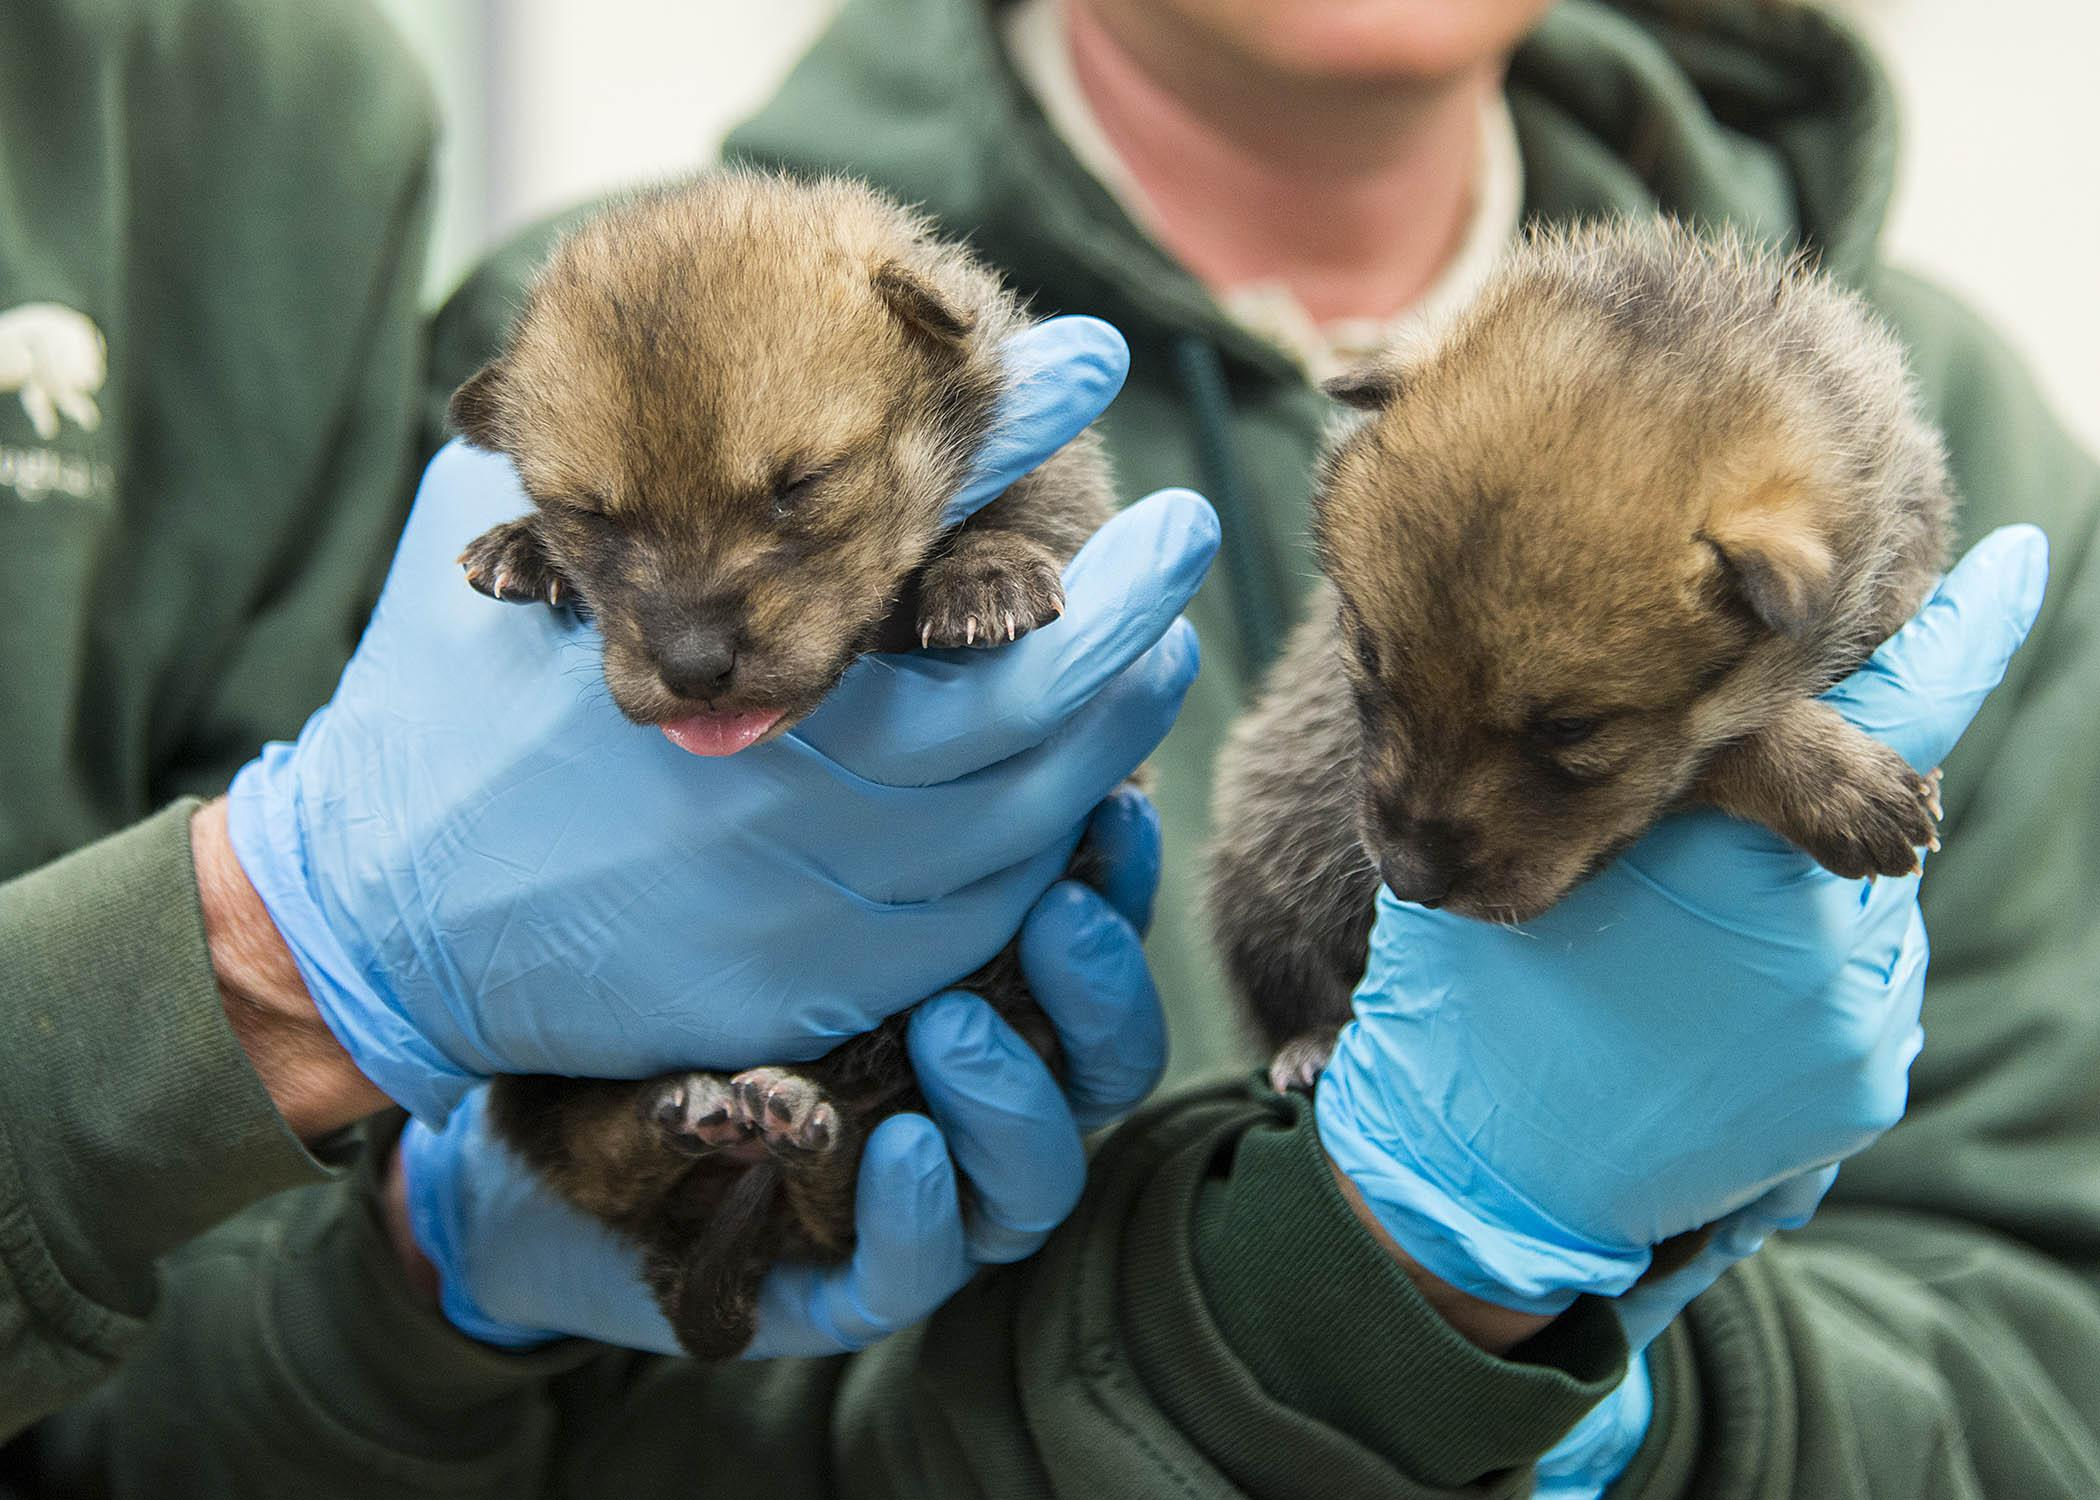 Two wild-born Mexican gray wolf puppies arrive at Brookfield Zoo as part of the U.S. Fish & Wildlife Service's recovery program for the species. (Mexican Wolf Interagency Field Team / Chicago Zoological Society)